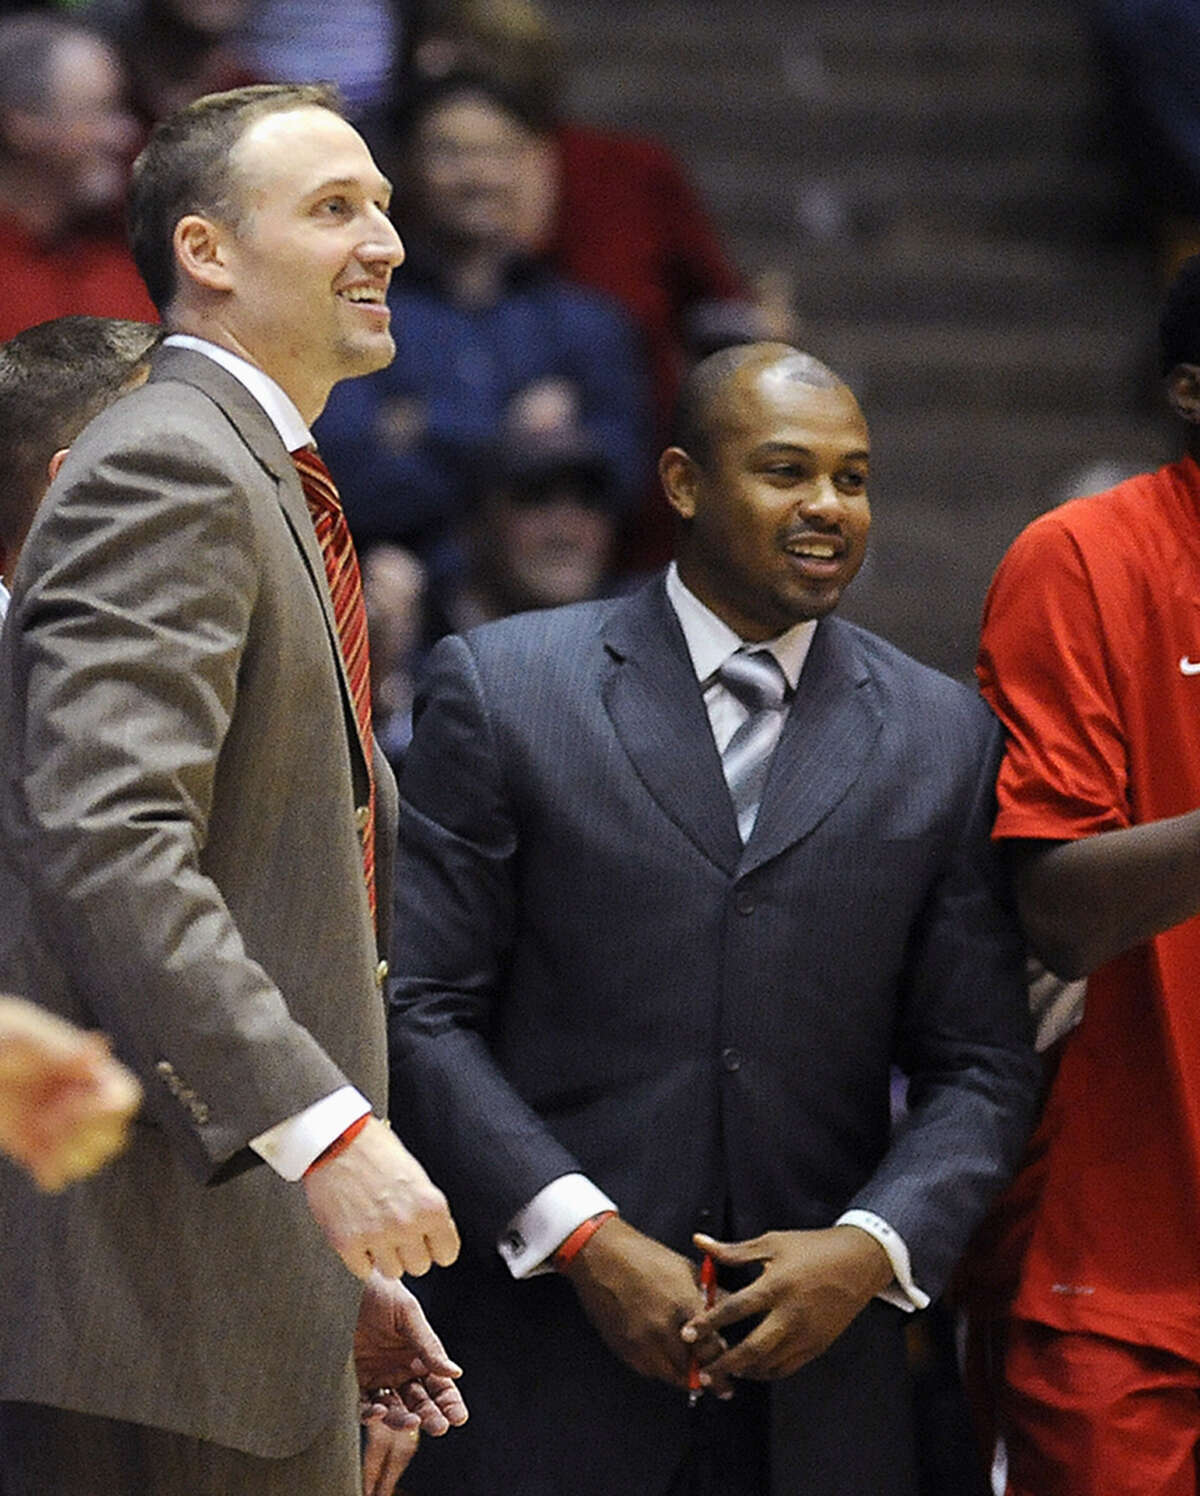 FILE - In this Nov. 17, 2013 file photo, Illinois State associate head basketball coach Torrey Ward, right, and head coach Dan Muller smile after an NCAA college basketball game against Northwestern in Evanston, Ill. Illinois State University President Larry Dietz confirmed in an email to students, faculty and staff Tuesday, April 7, 2015, that Ward was one of seven people killed when the small plane crash they were in crashed in a central Illinois field near Bloomington early Tuesday, April 7, 2015. The Cessna 414 twin-engine aircraft took off from Indianapolis and crashed just short of the Central Illinois Regional Airport in Bloomington after midnight, the Federal Aviation Administration said. The plane was returning from the NCAA Final Four tournament. (AP Photo/Matt Marton, File)